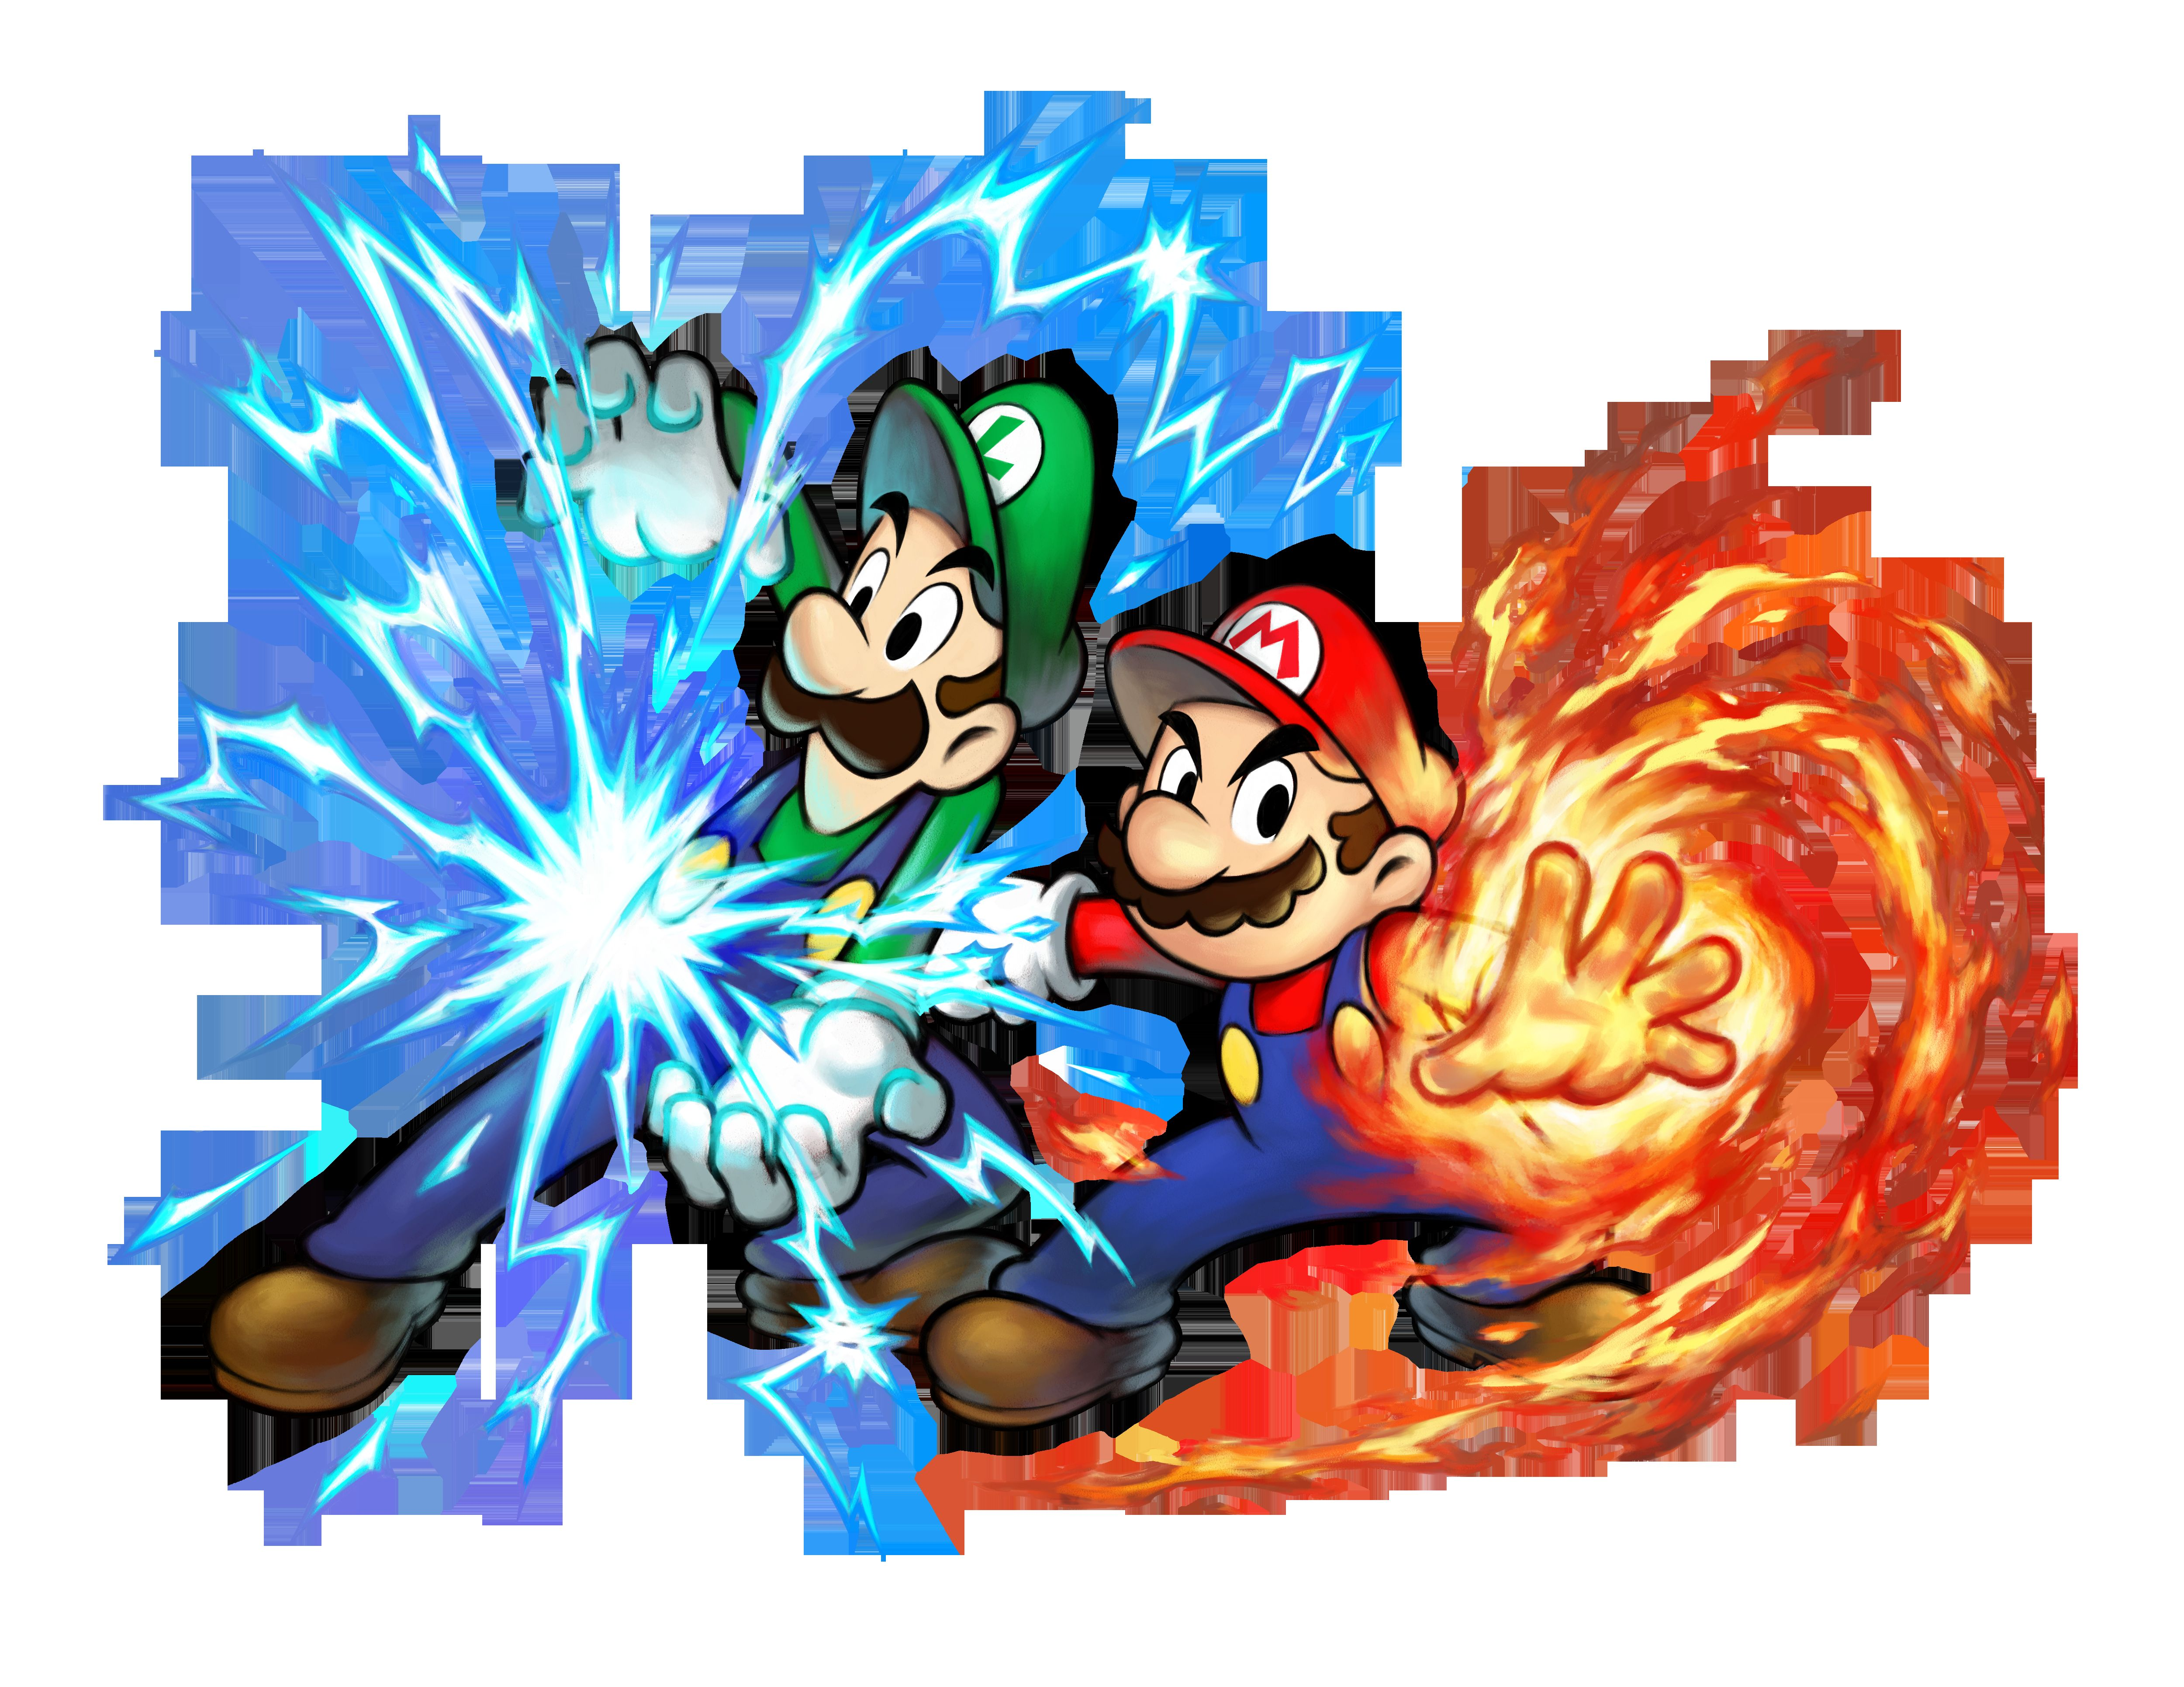 Mario Luigi Superstar Saga Bowser S Minions Announced